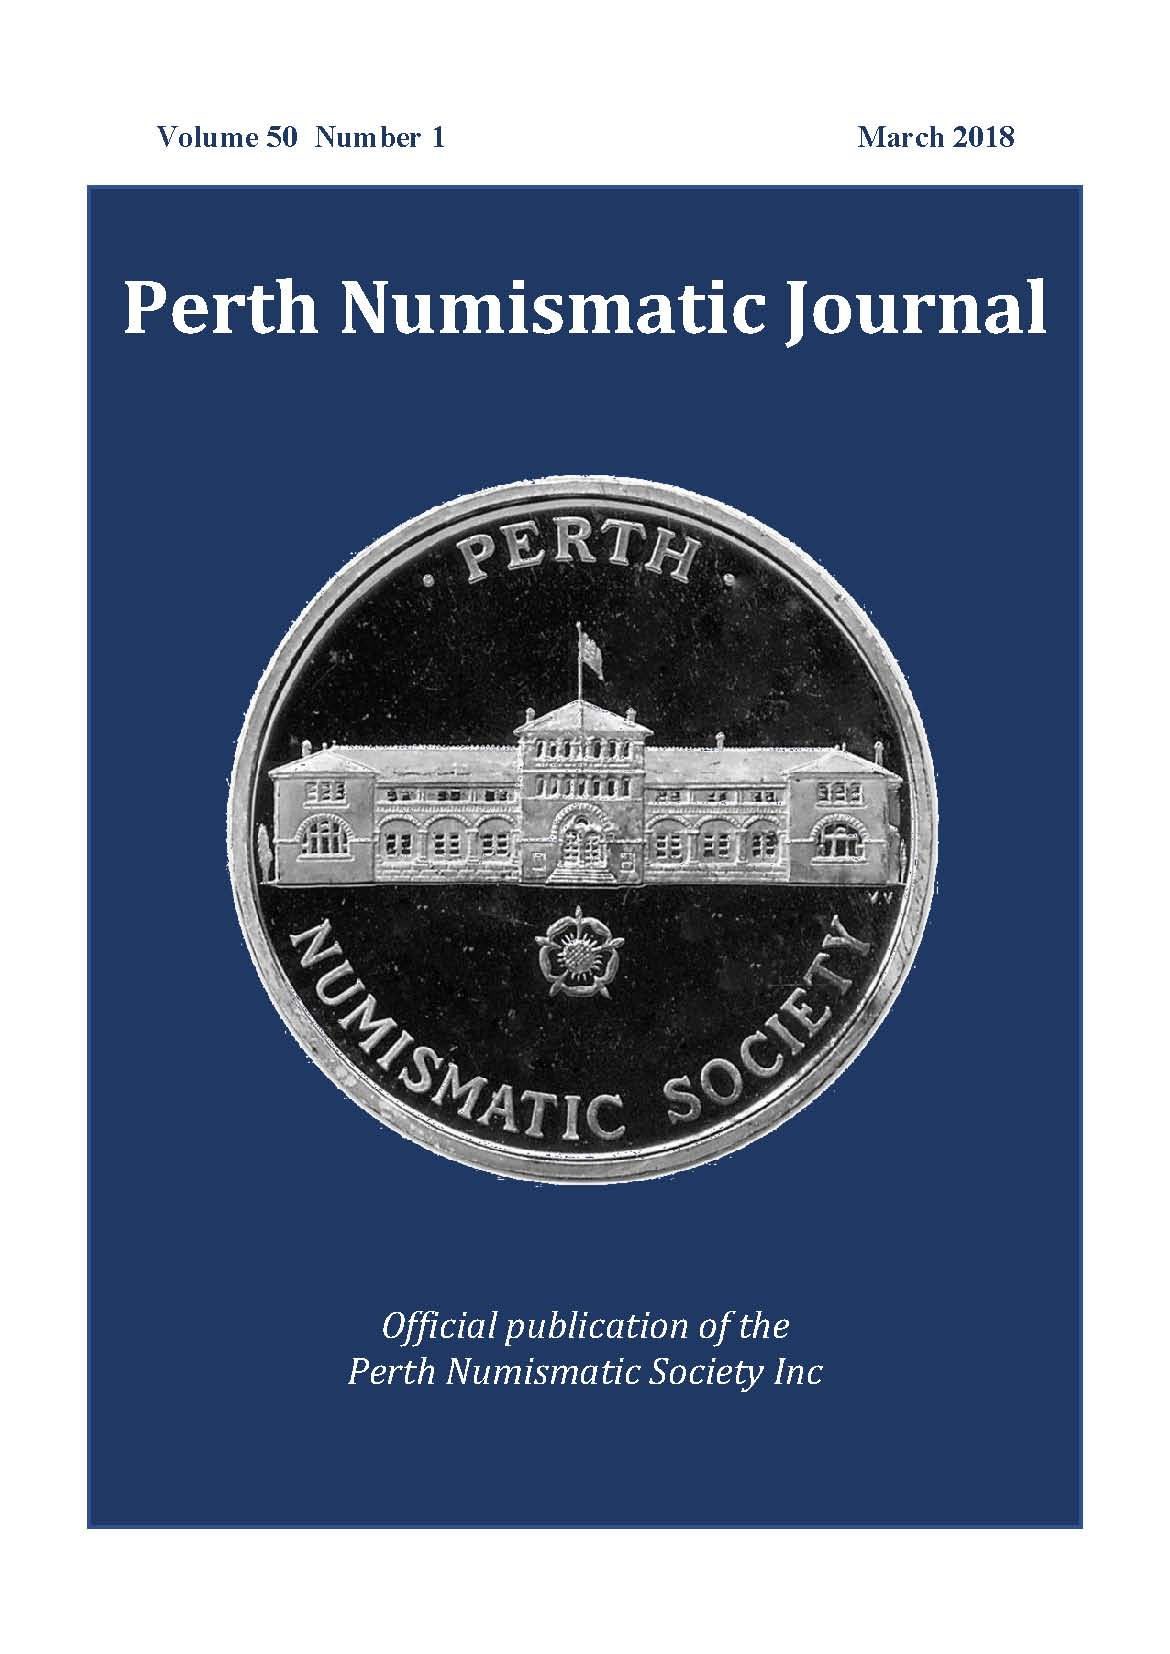 PNS Journal March 2018 Cover